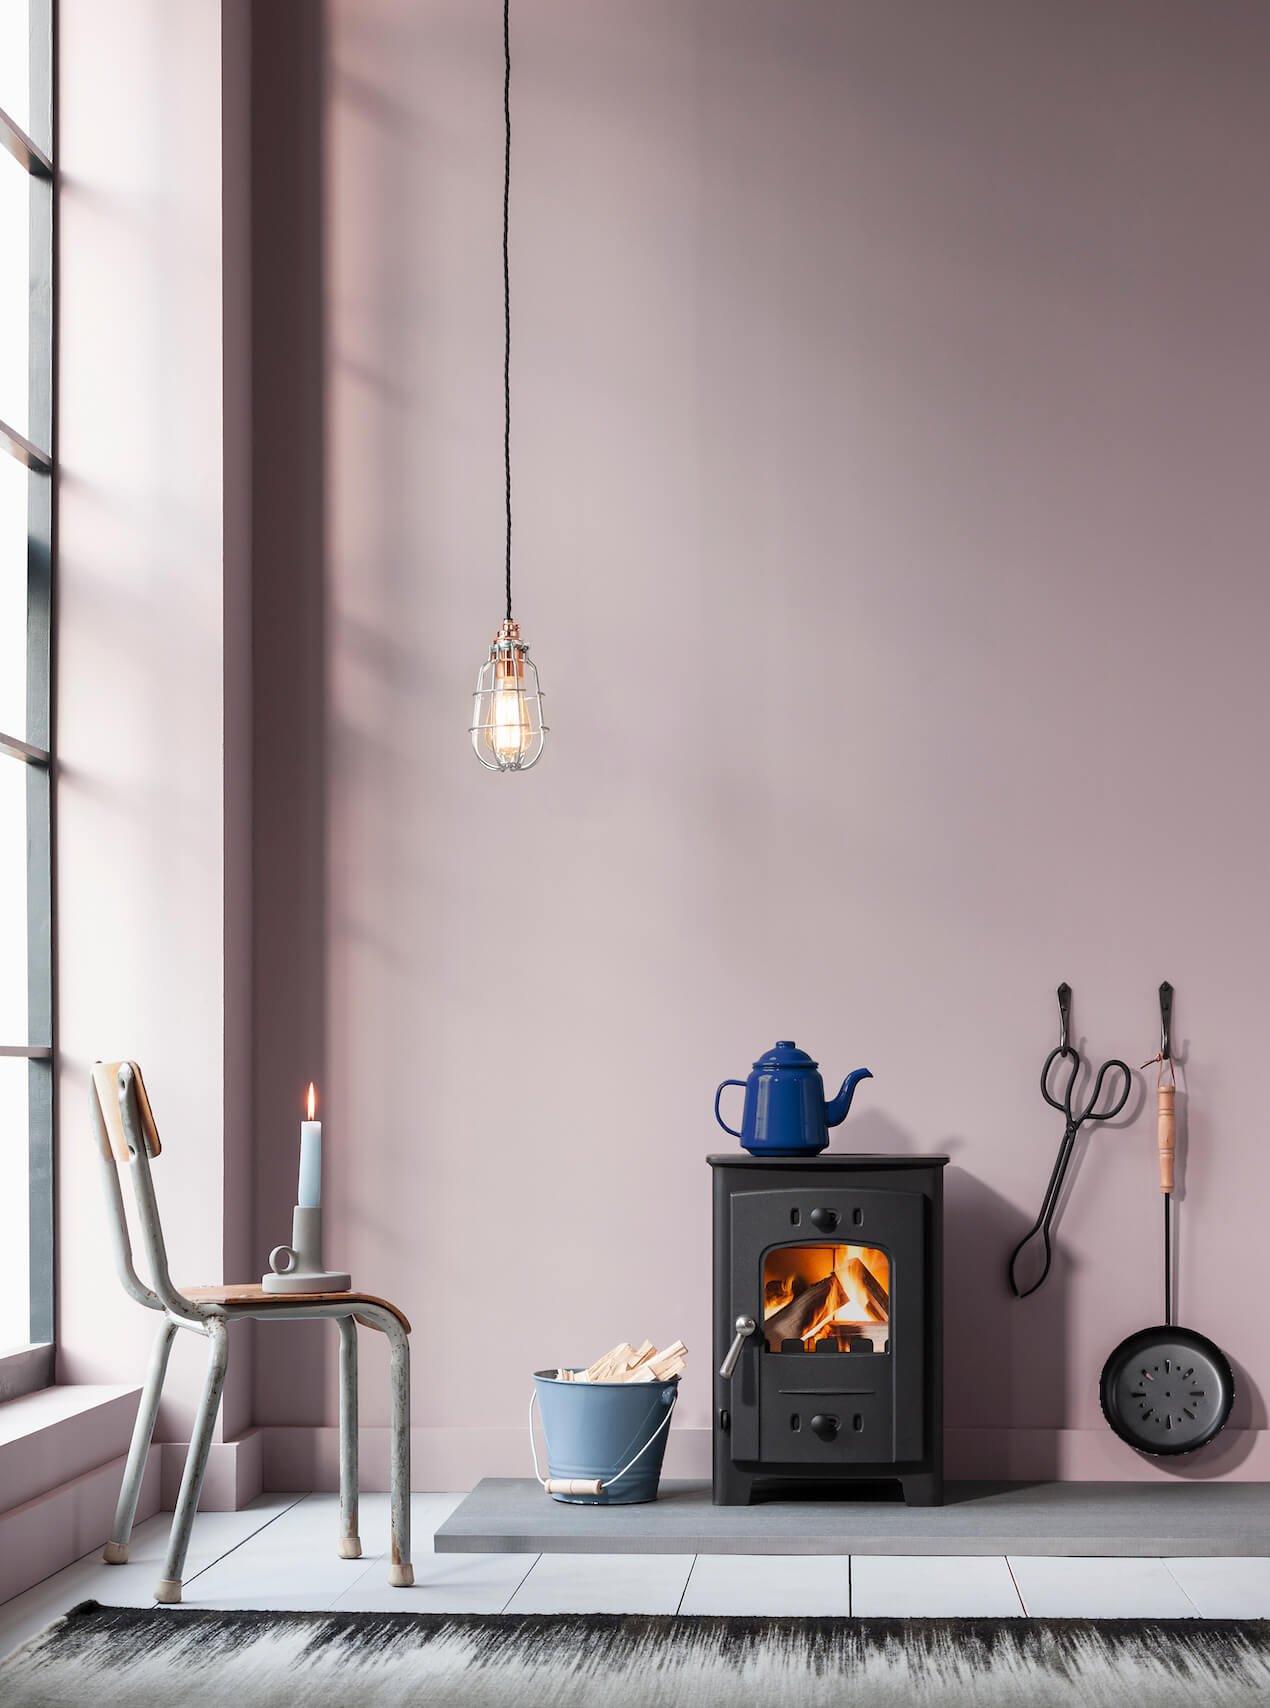 7 snuggly fireplaces settings to inspire you in time for Christmas by interior stylist & lifestyle blogger Maxine Brady from We Love Home blog